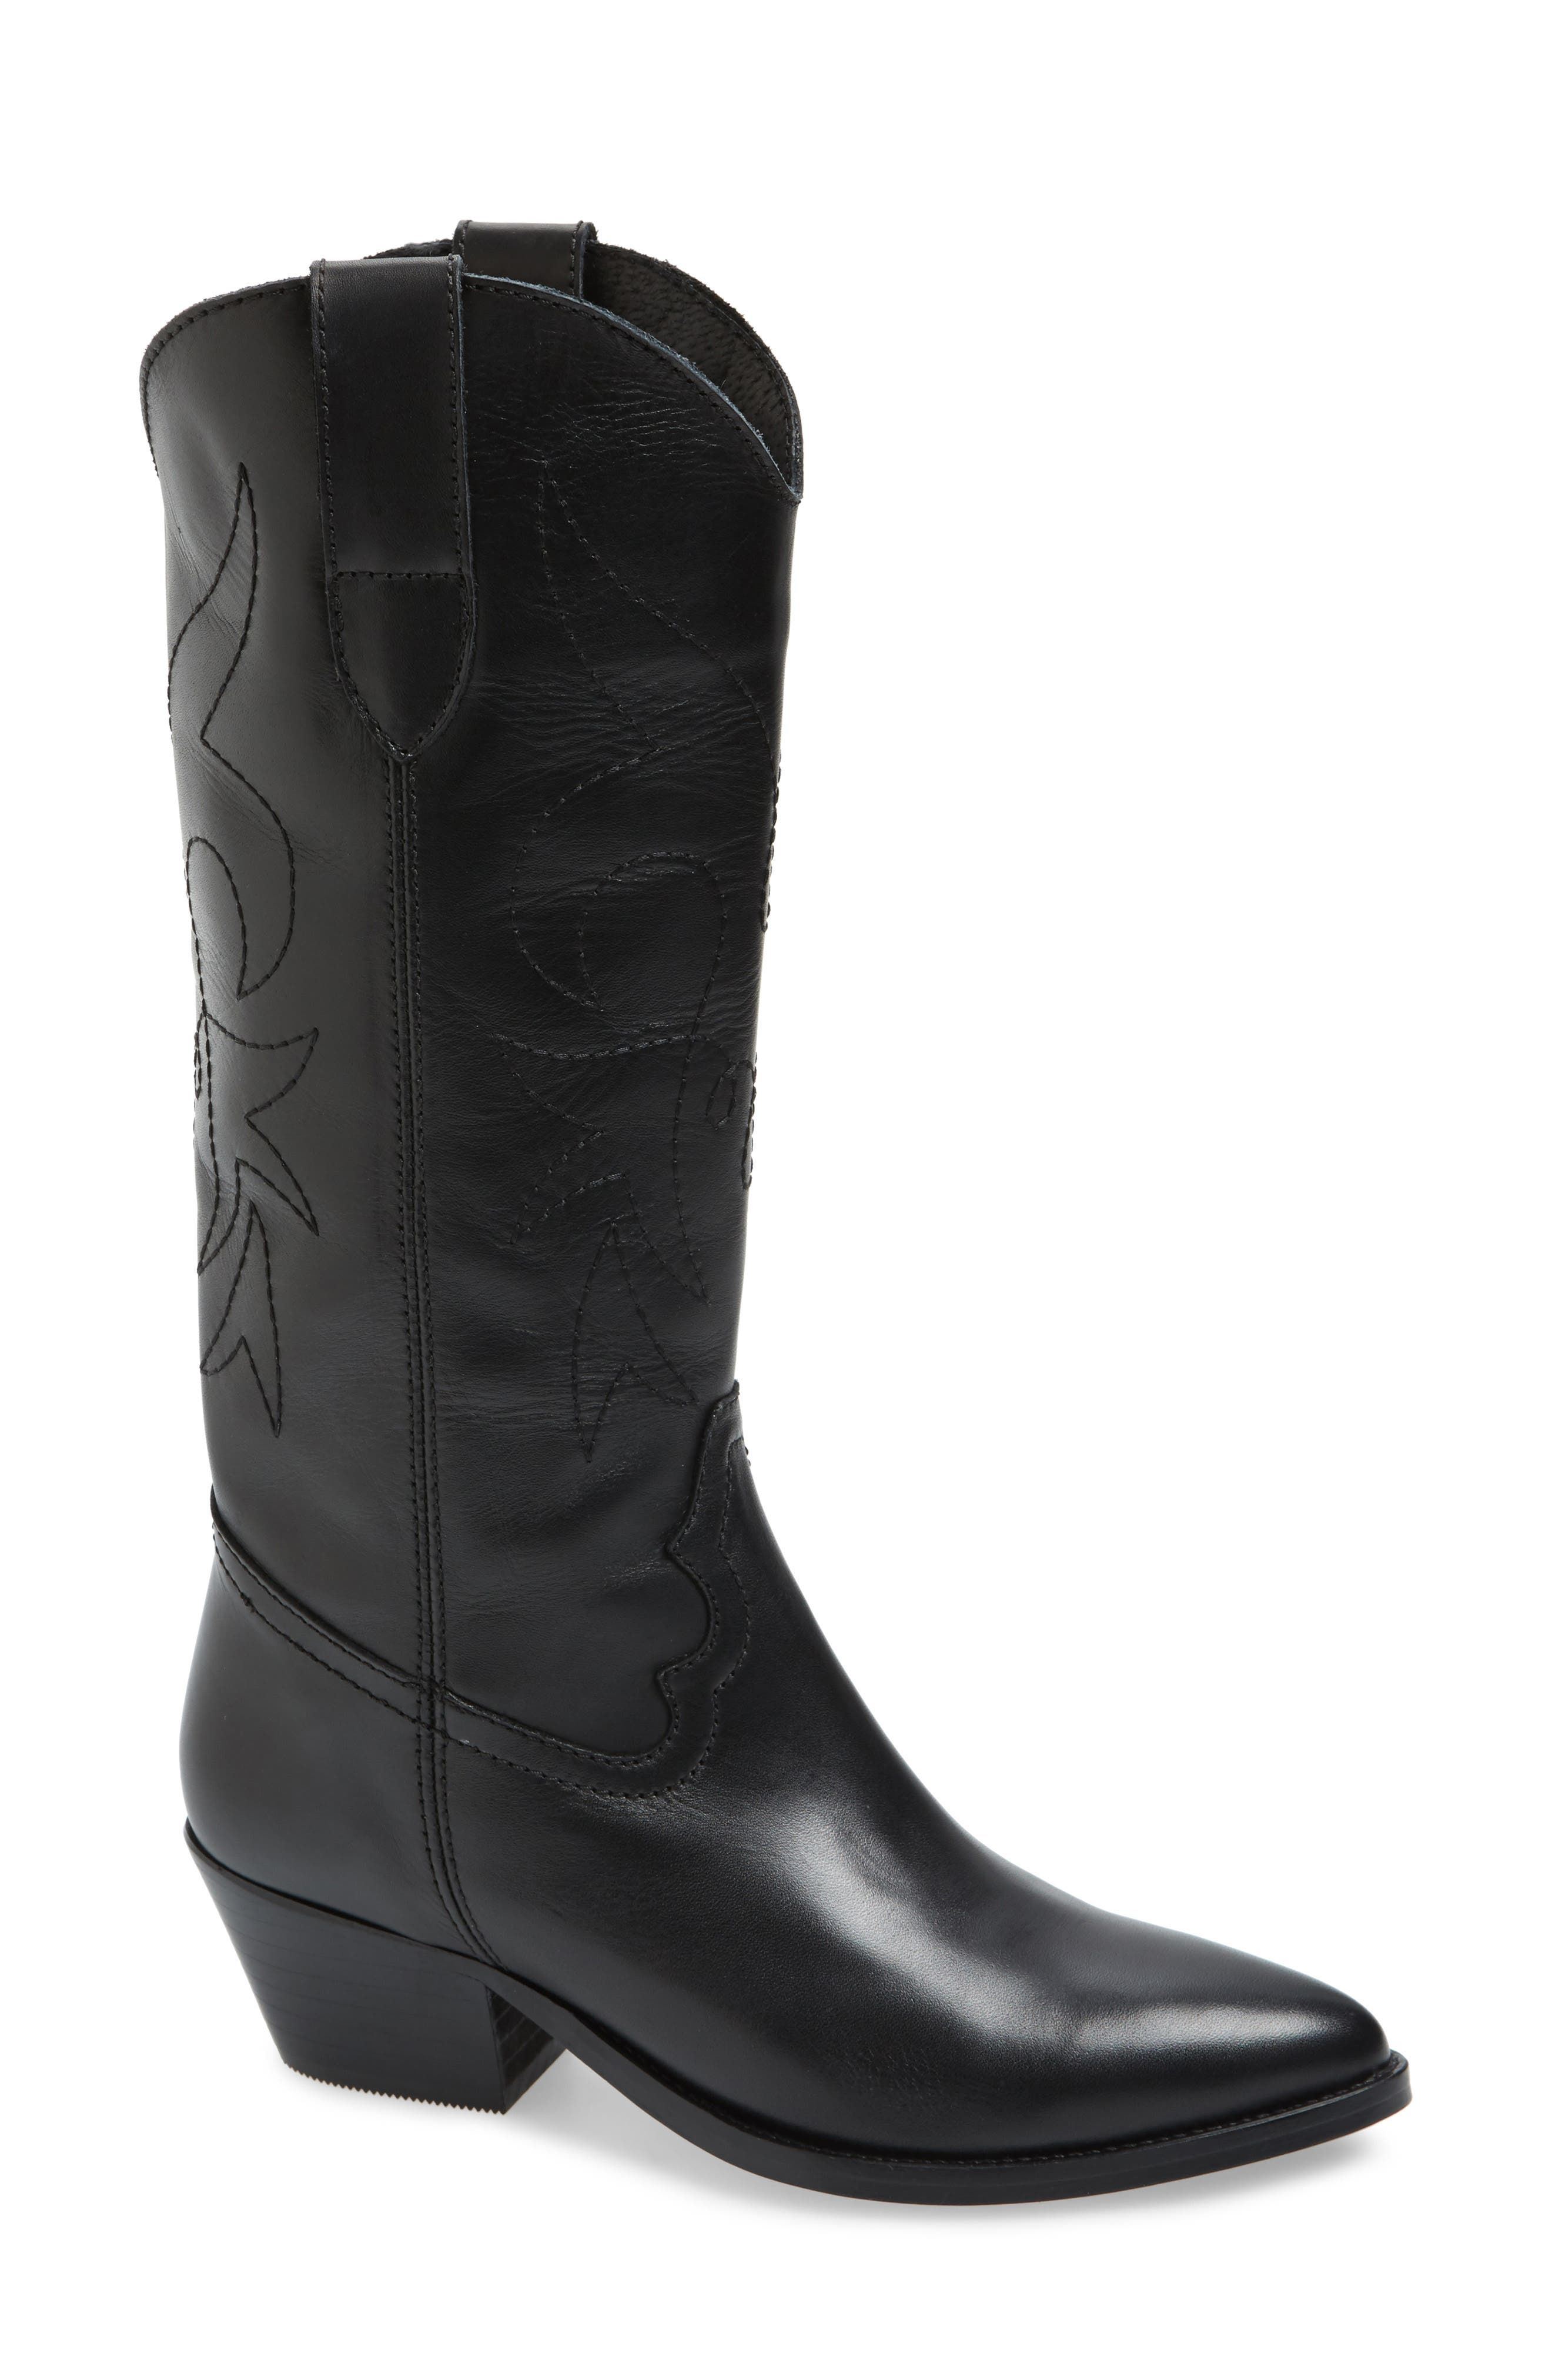 Main Image - Topshop Devious Western Boots (Women)